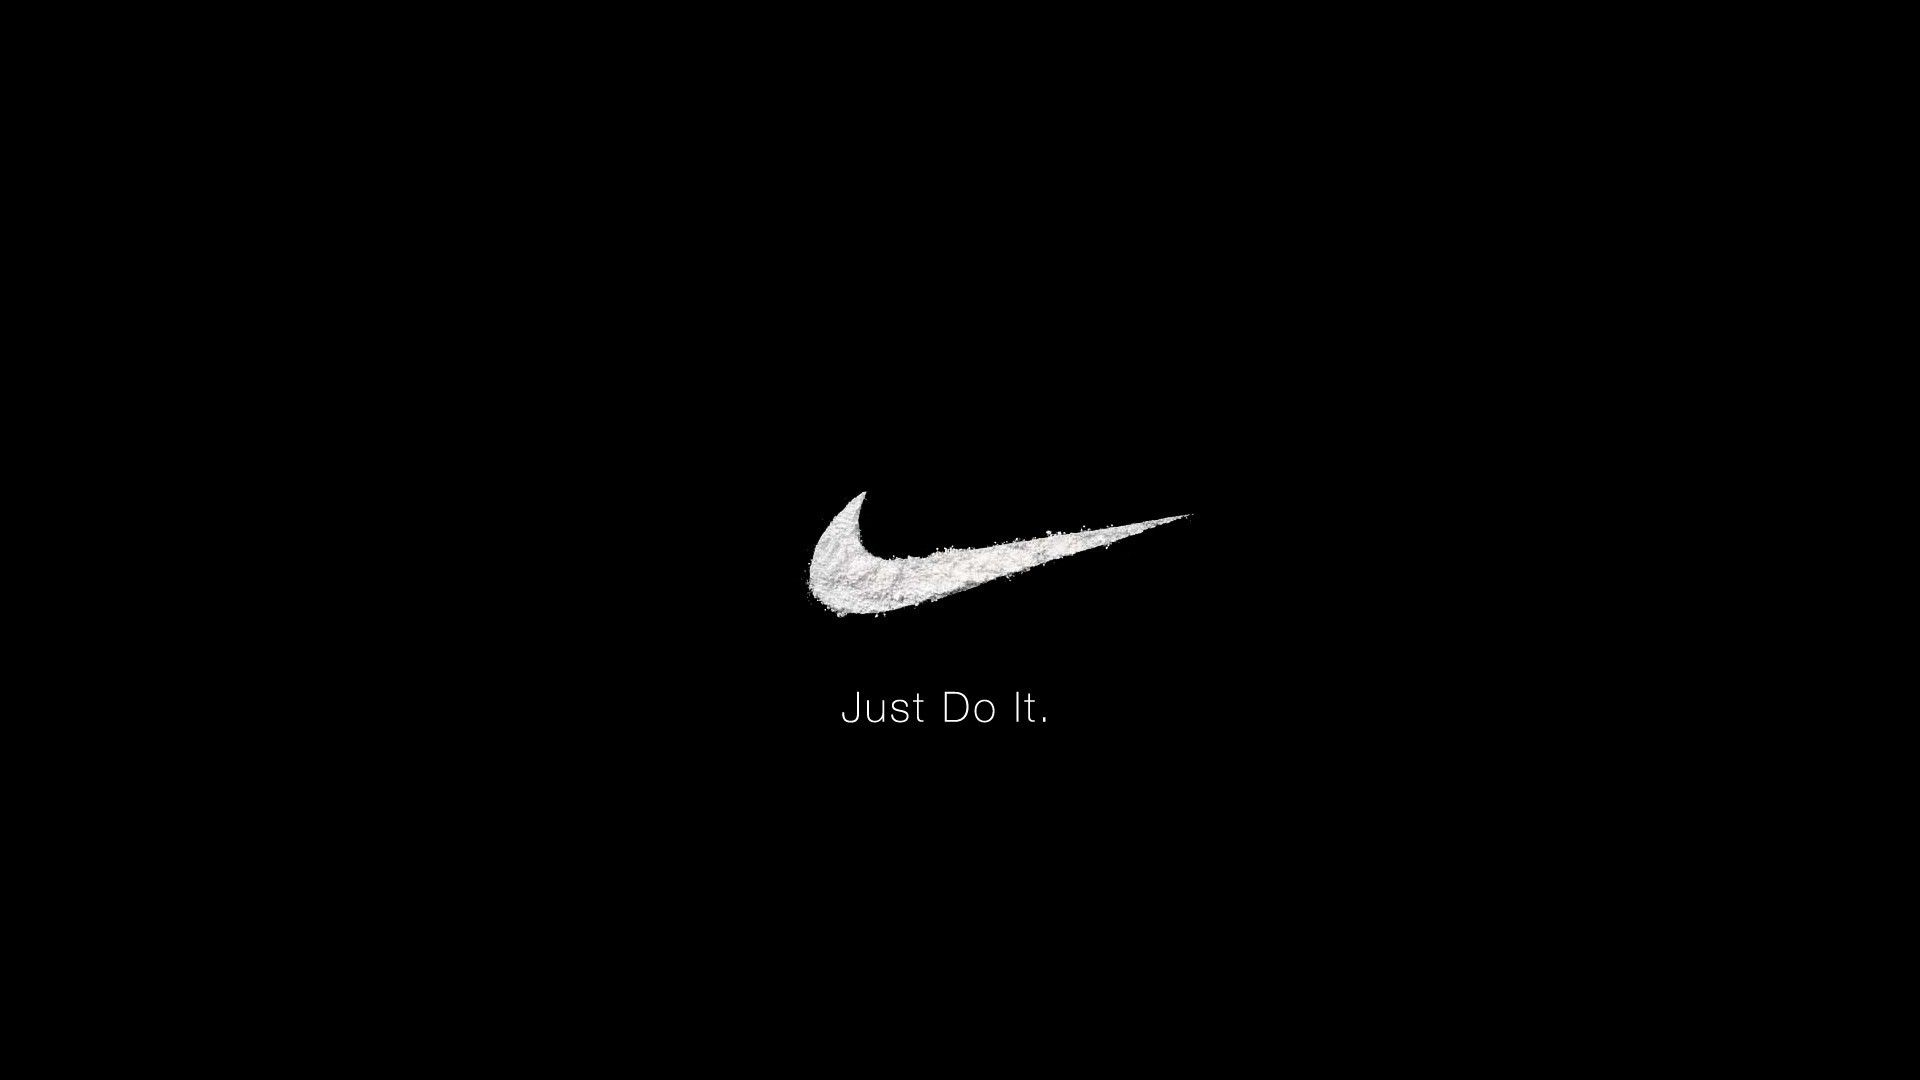 Nike hd wallpapers - Nike wallpaper hd ...